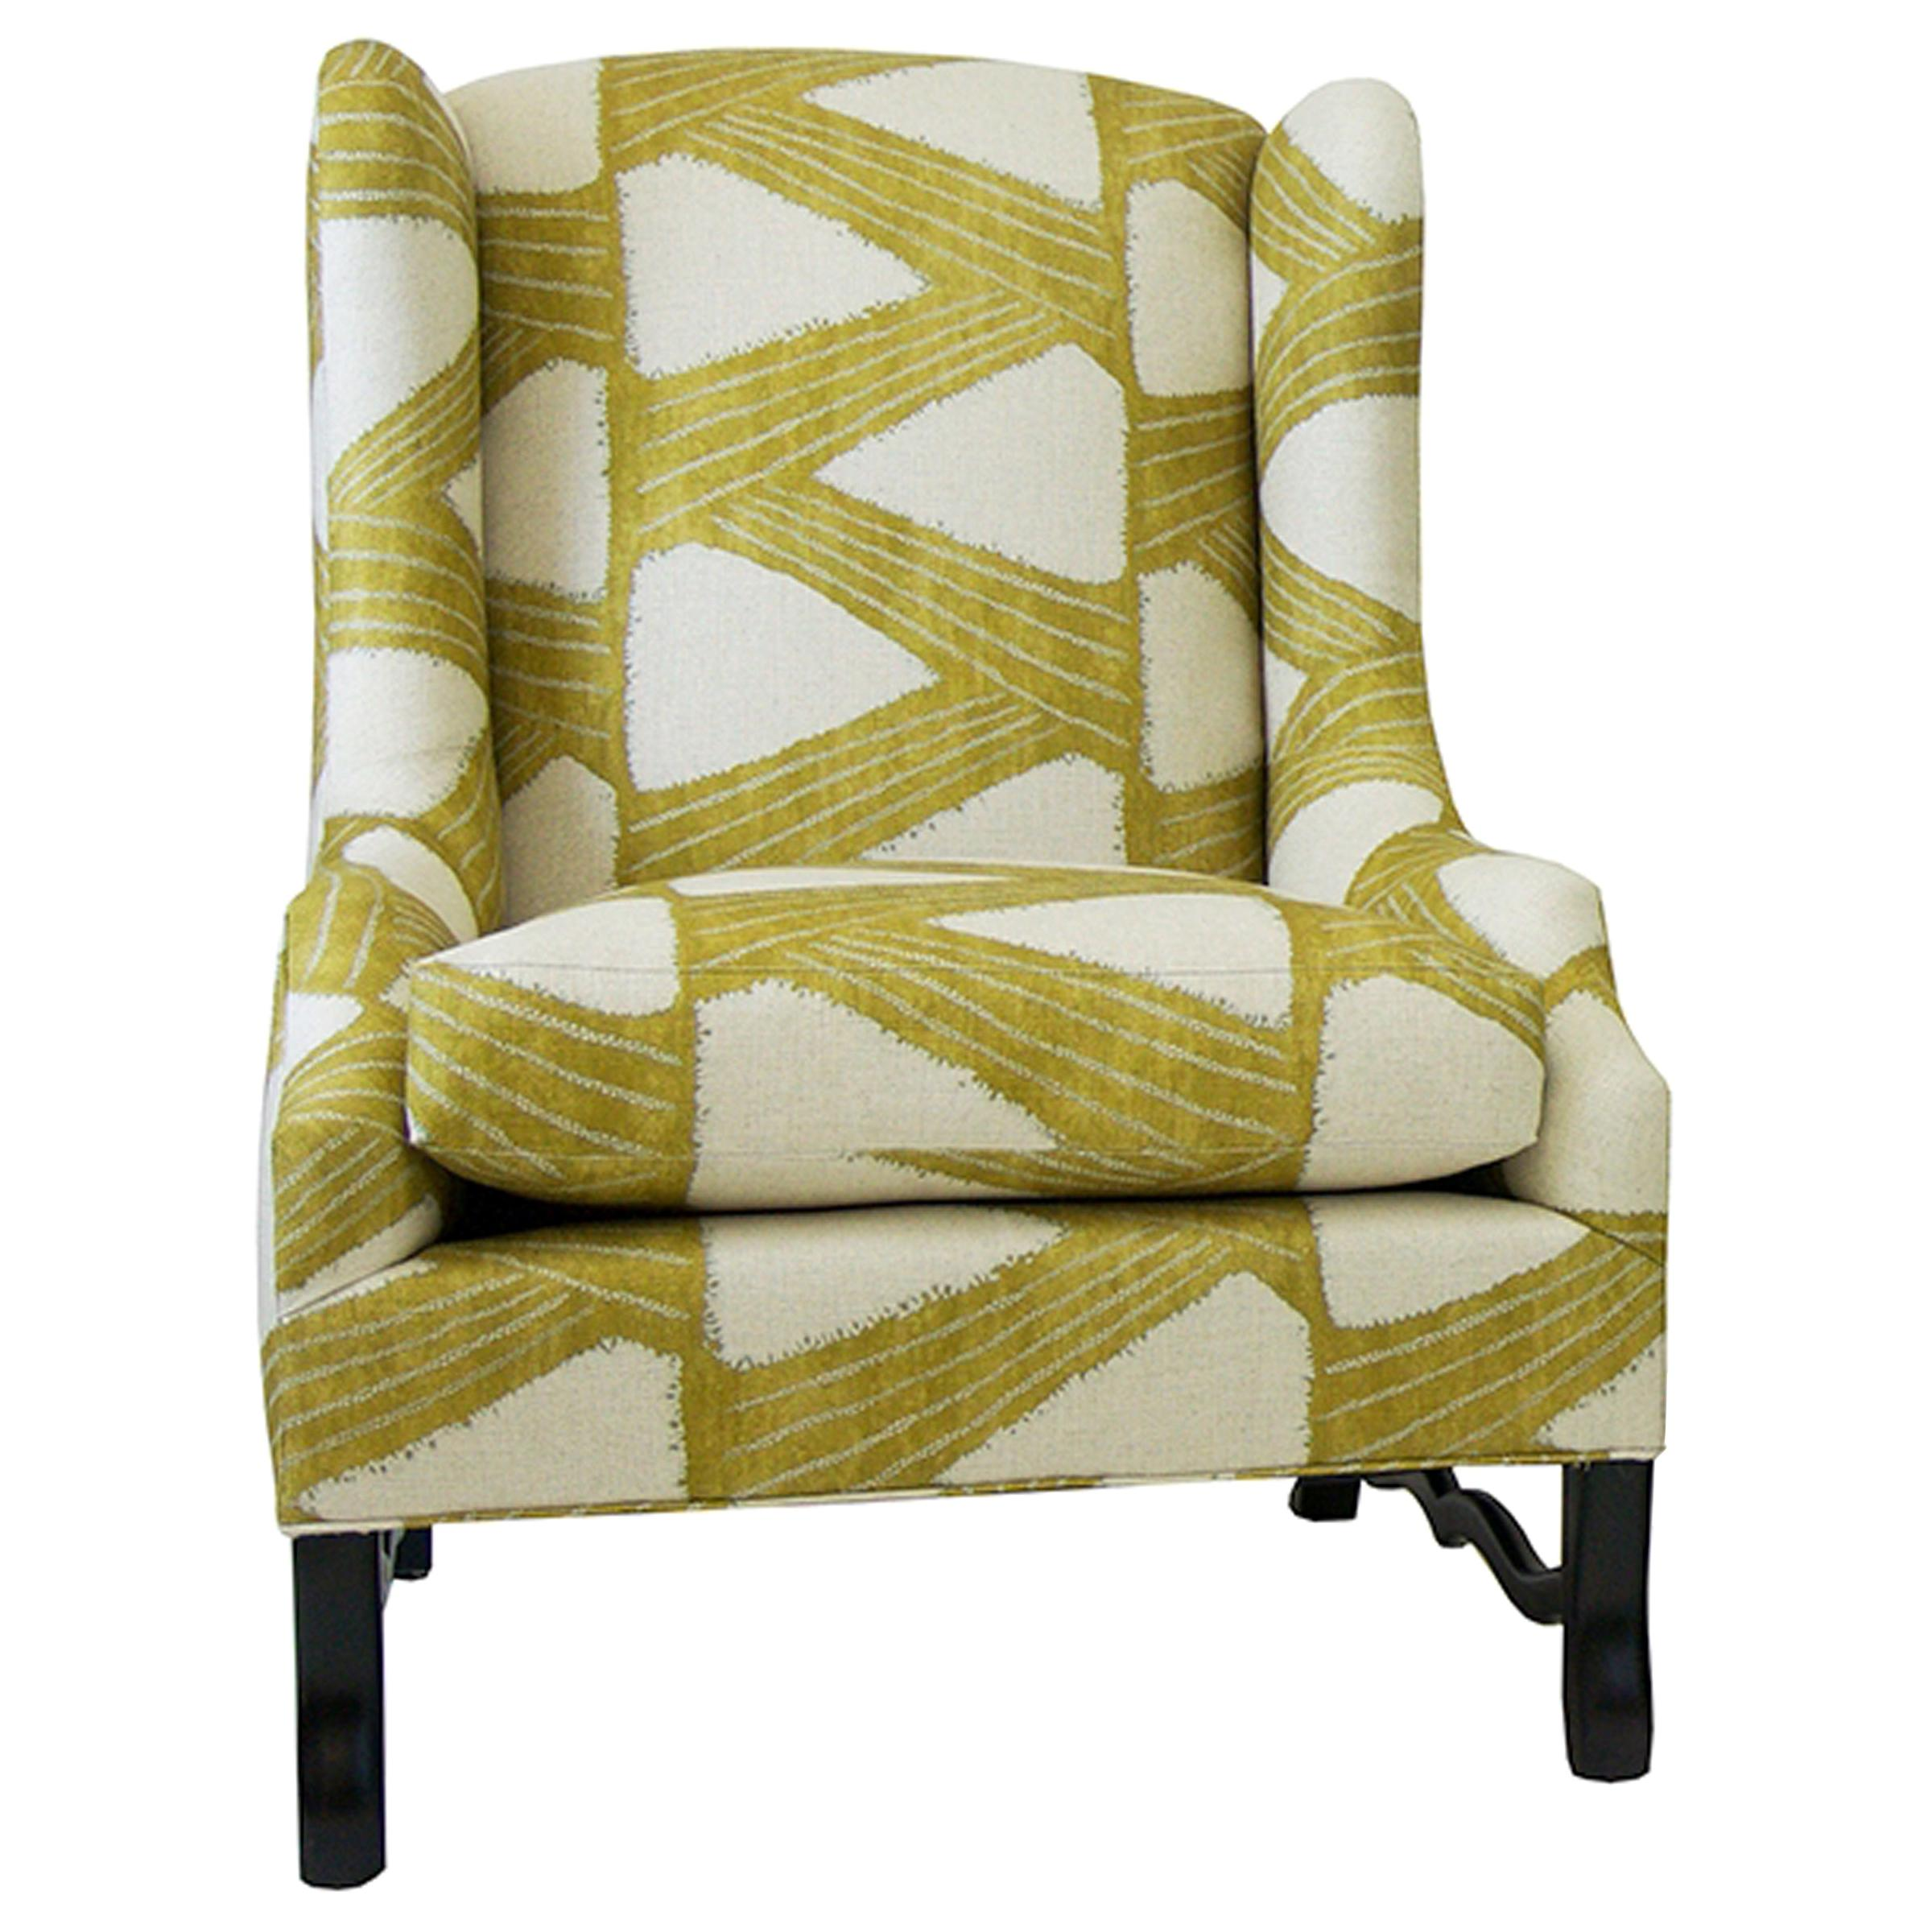 Modern Wing Chair with Loose Seat Cushion